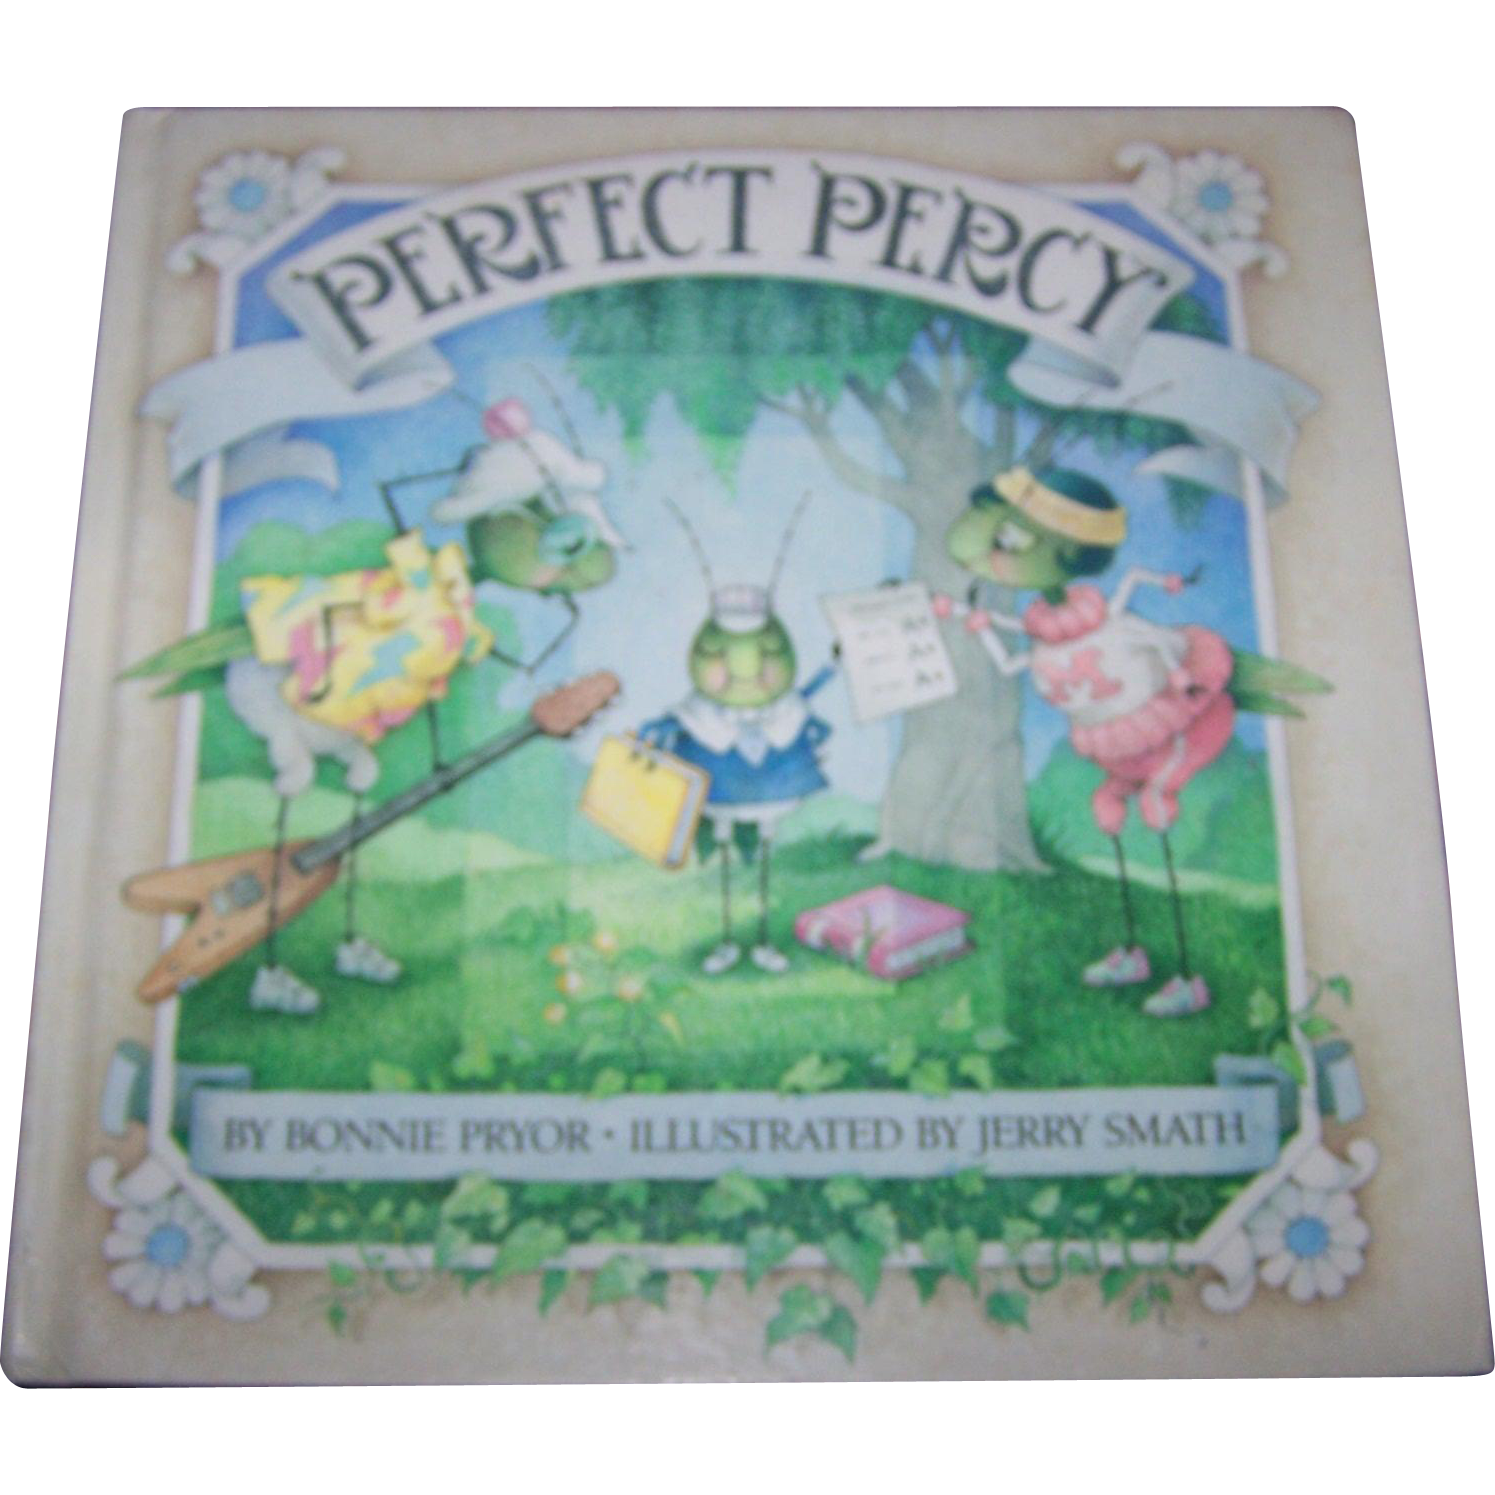 Hard Cover Children's Book Perfect Percy By Bonnie Pryor Simply Charming